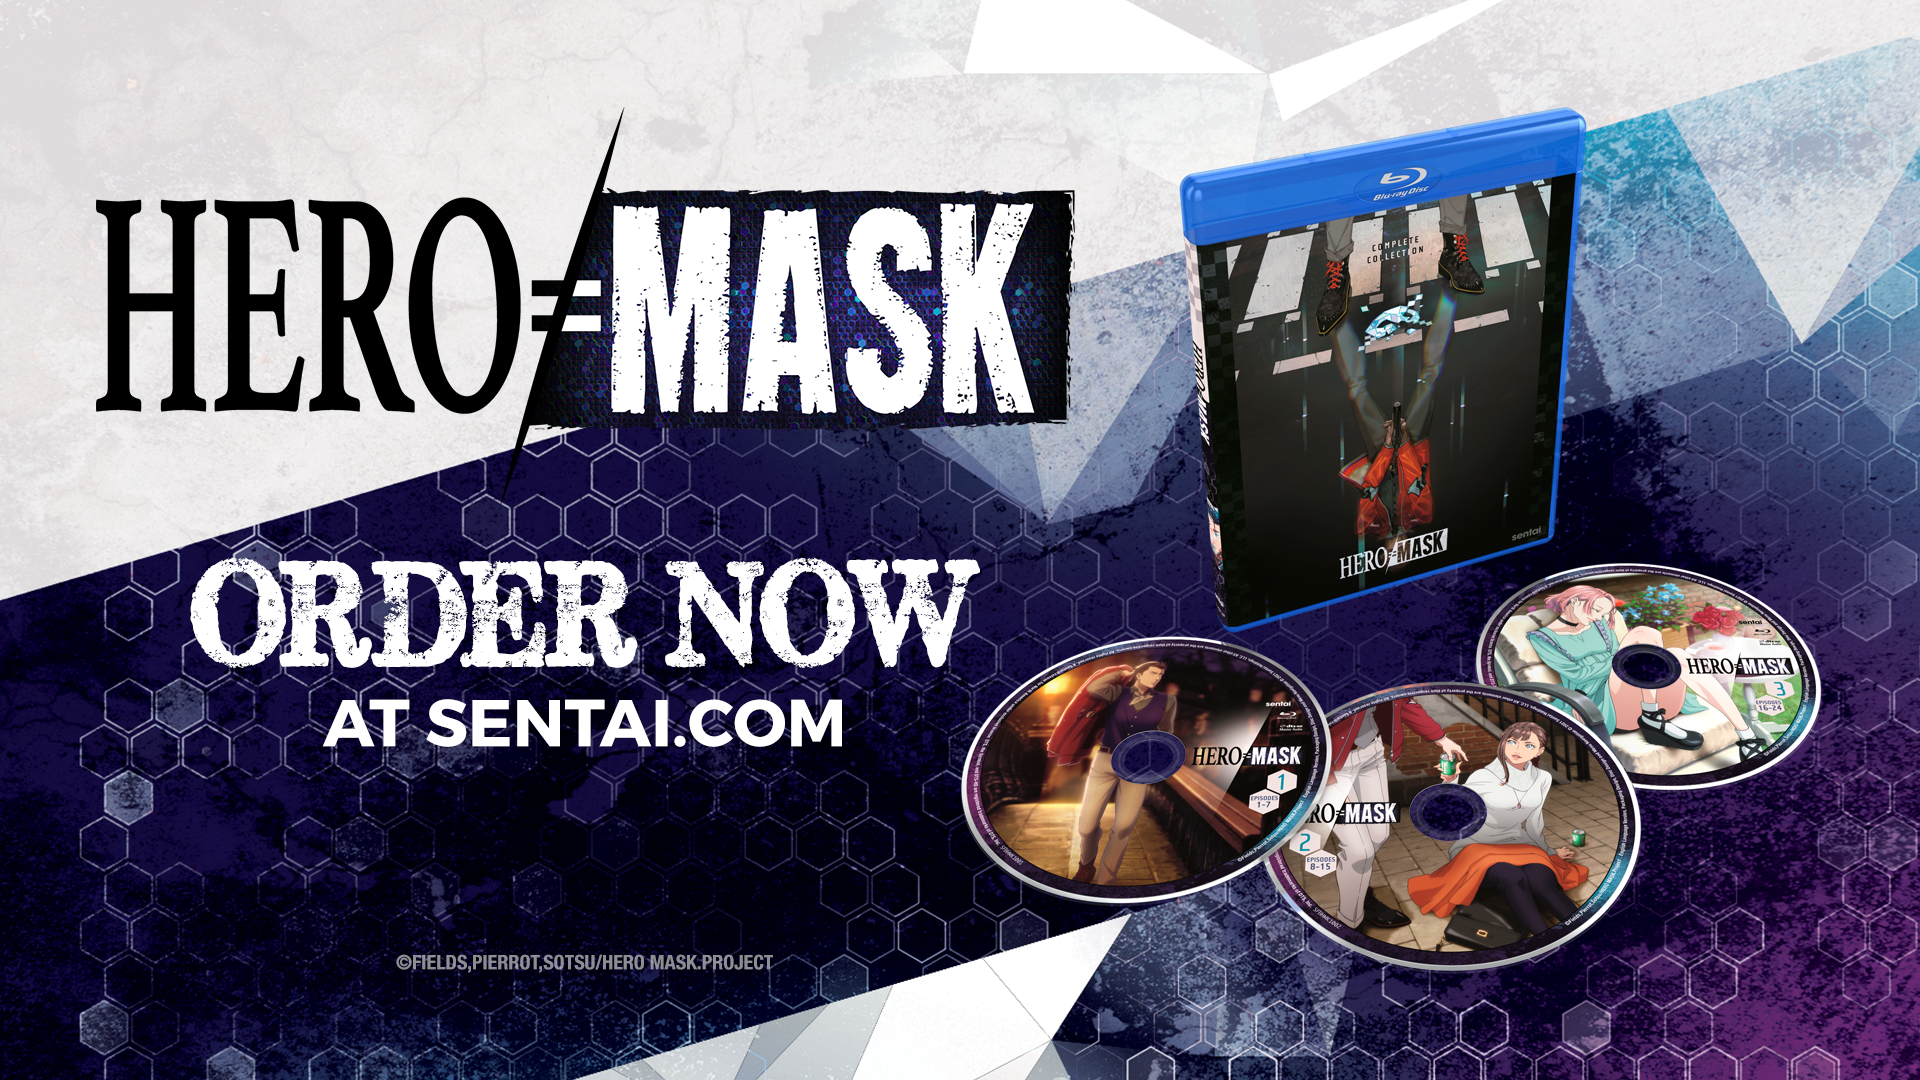 """The Hero Mask Blu-ray packaging along with three discs. The text says, """"Hero Mask"""" and """"Order now at sentai.com"""""""